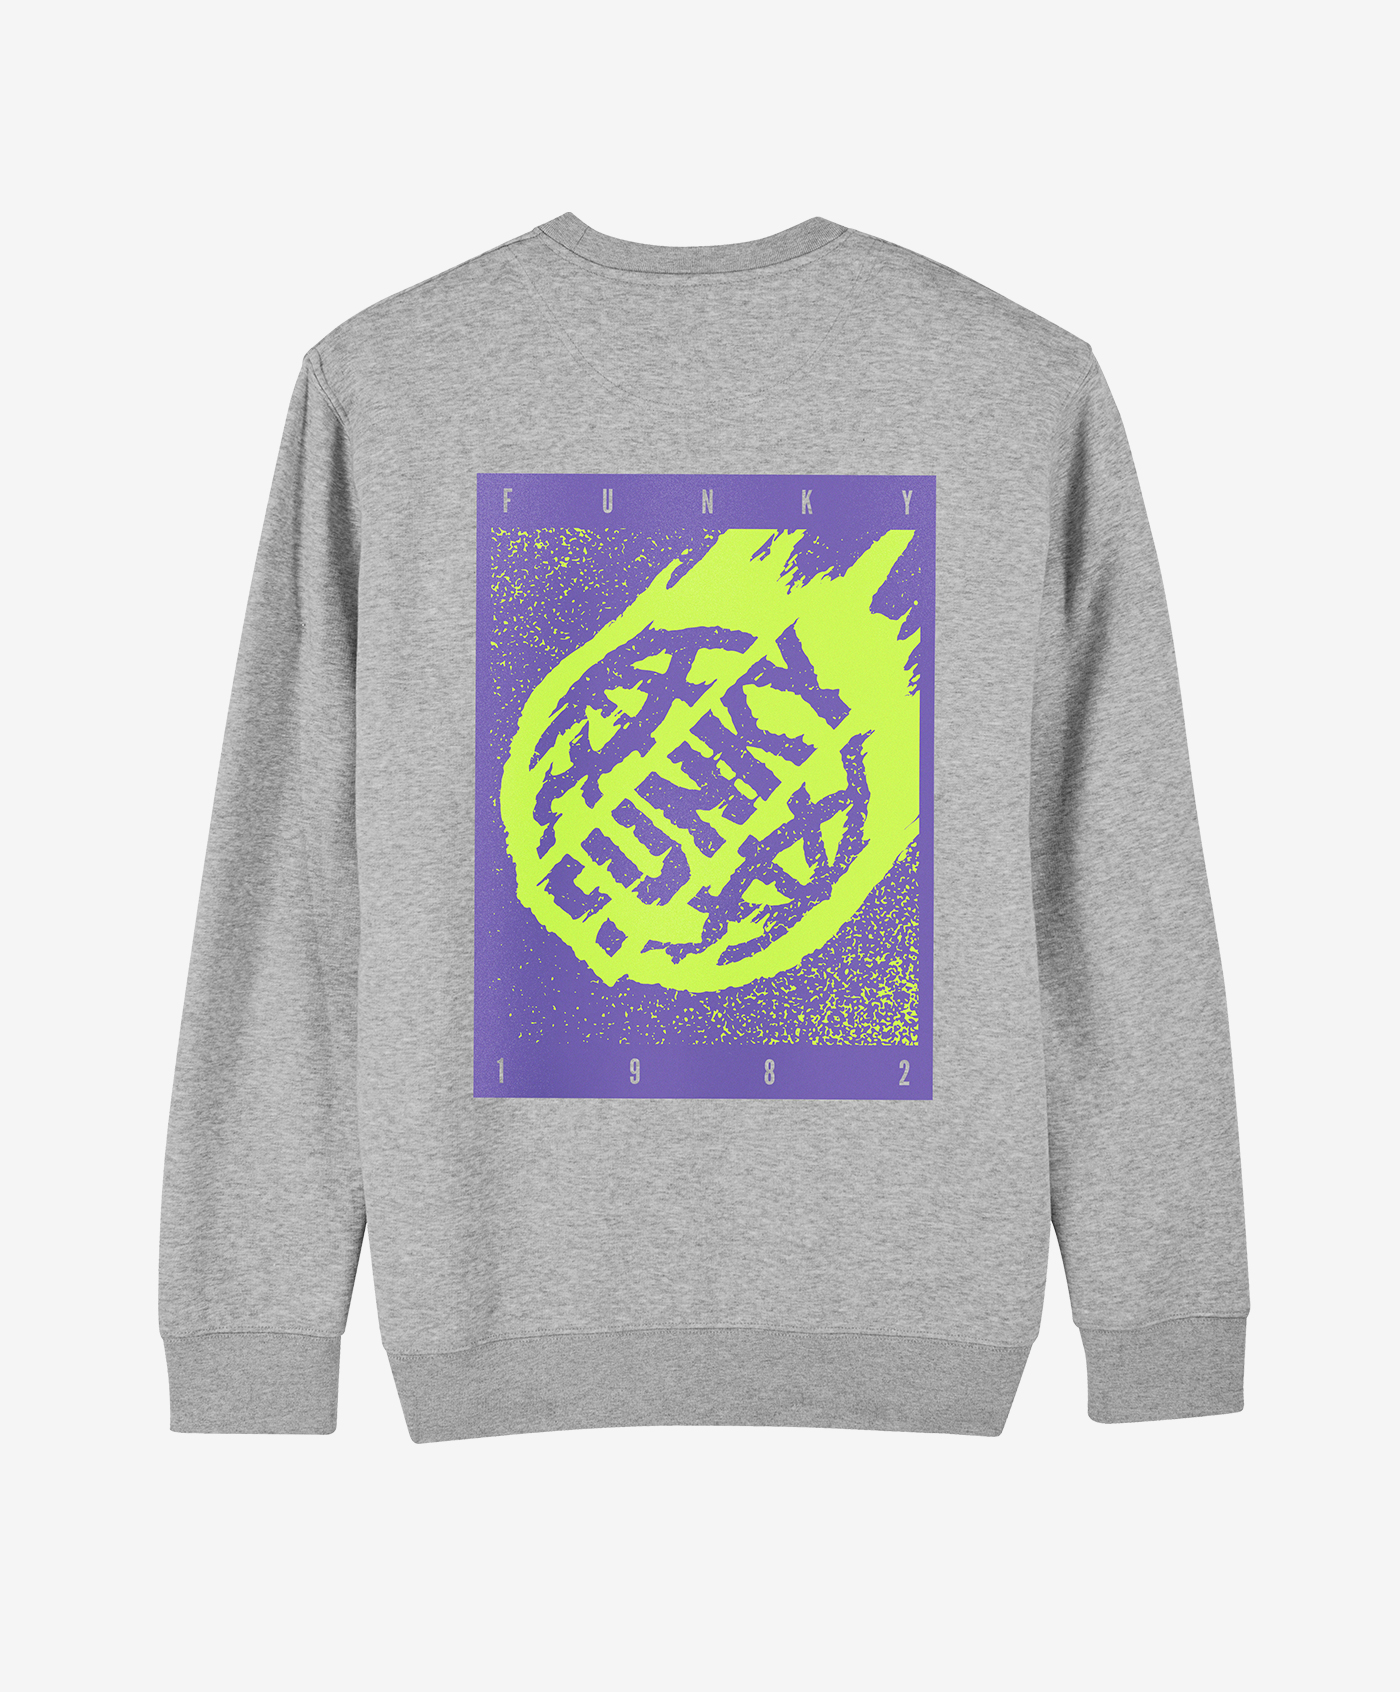 funky asteroid crewneck grey back